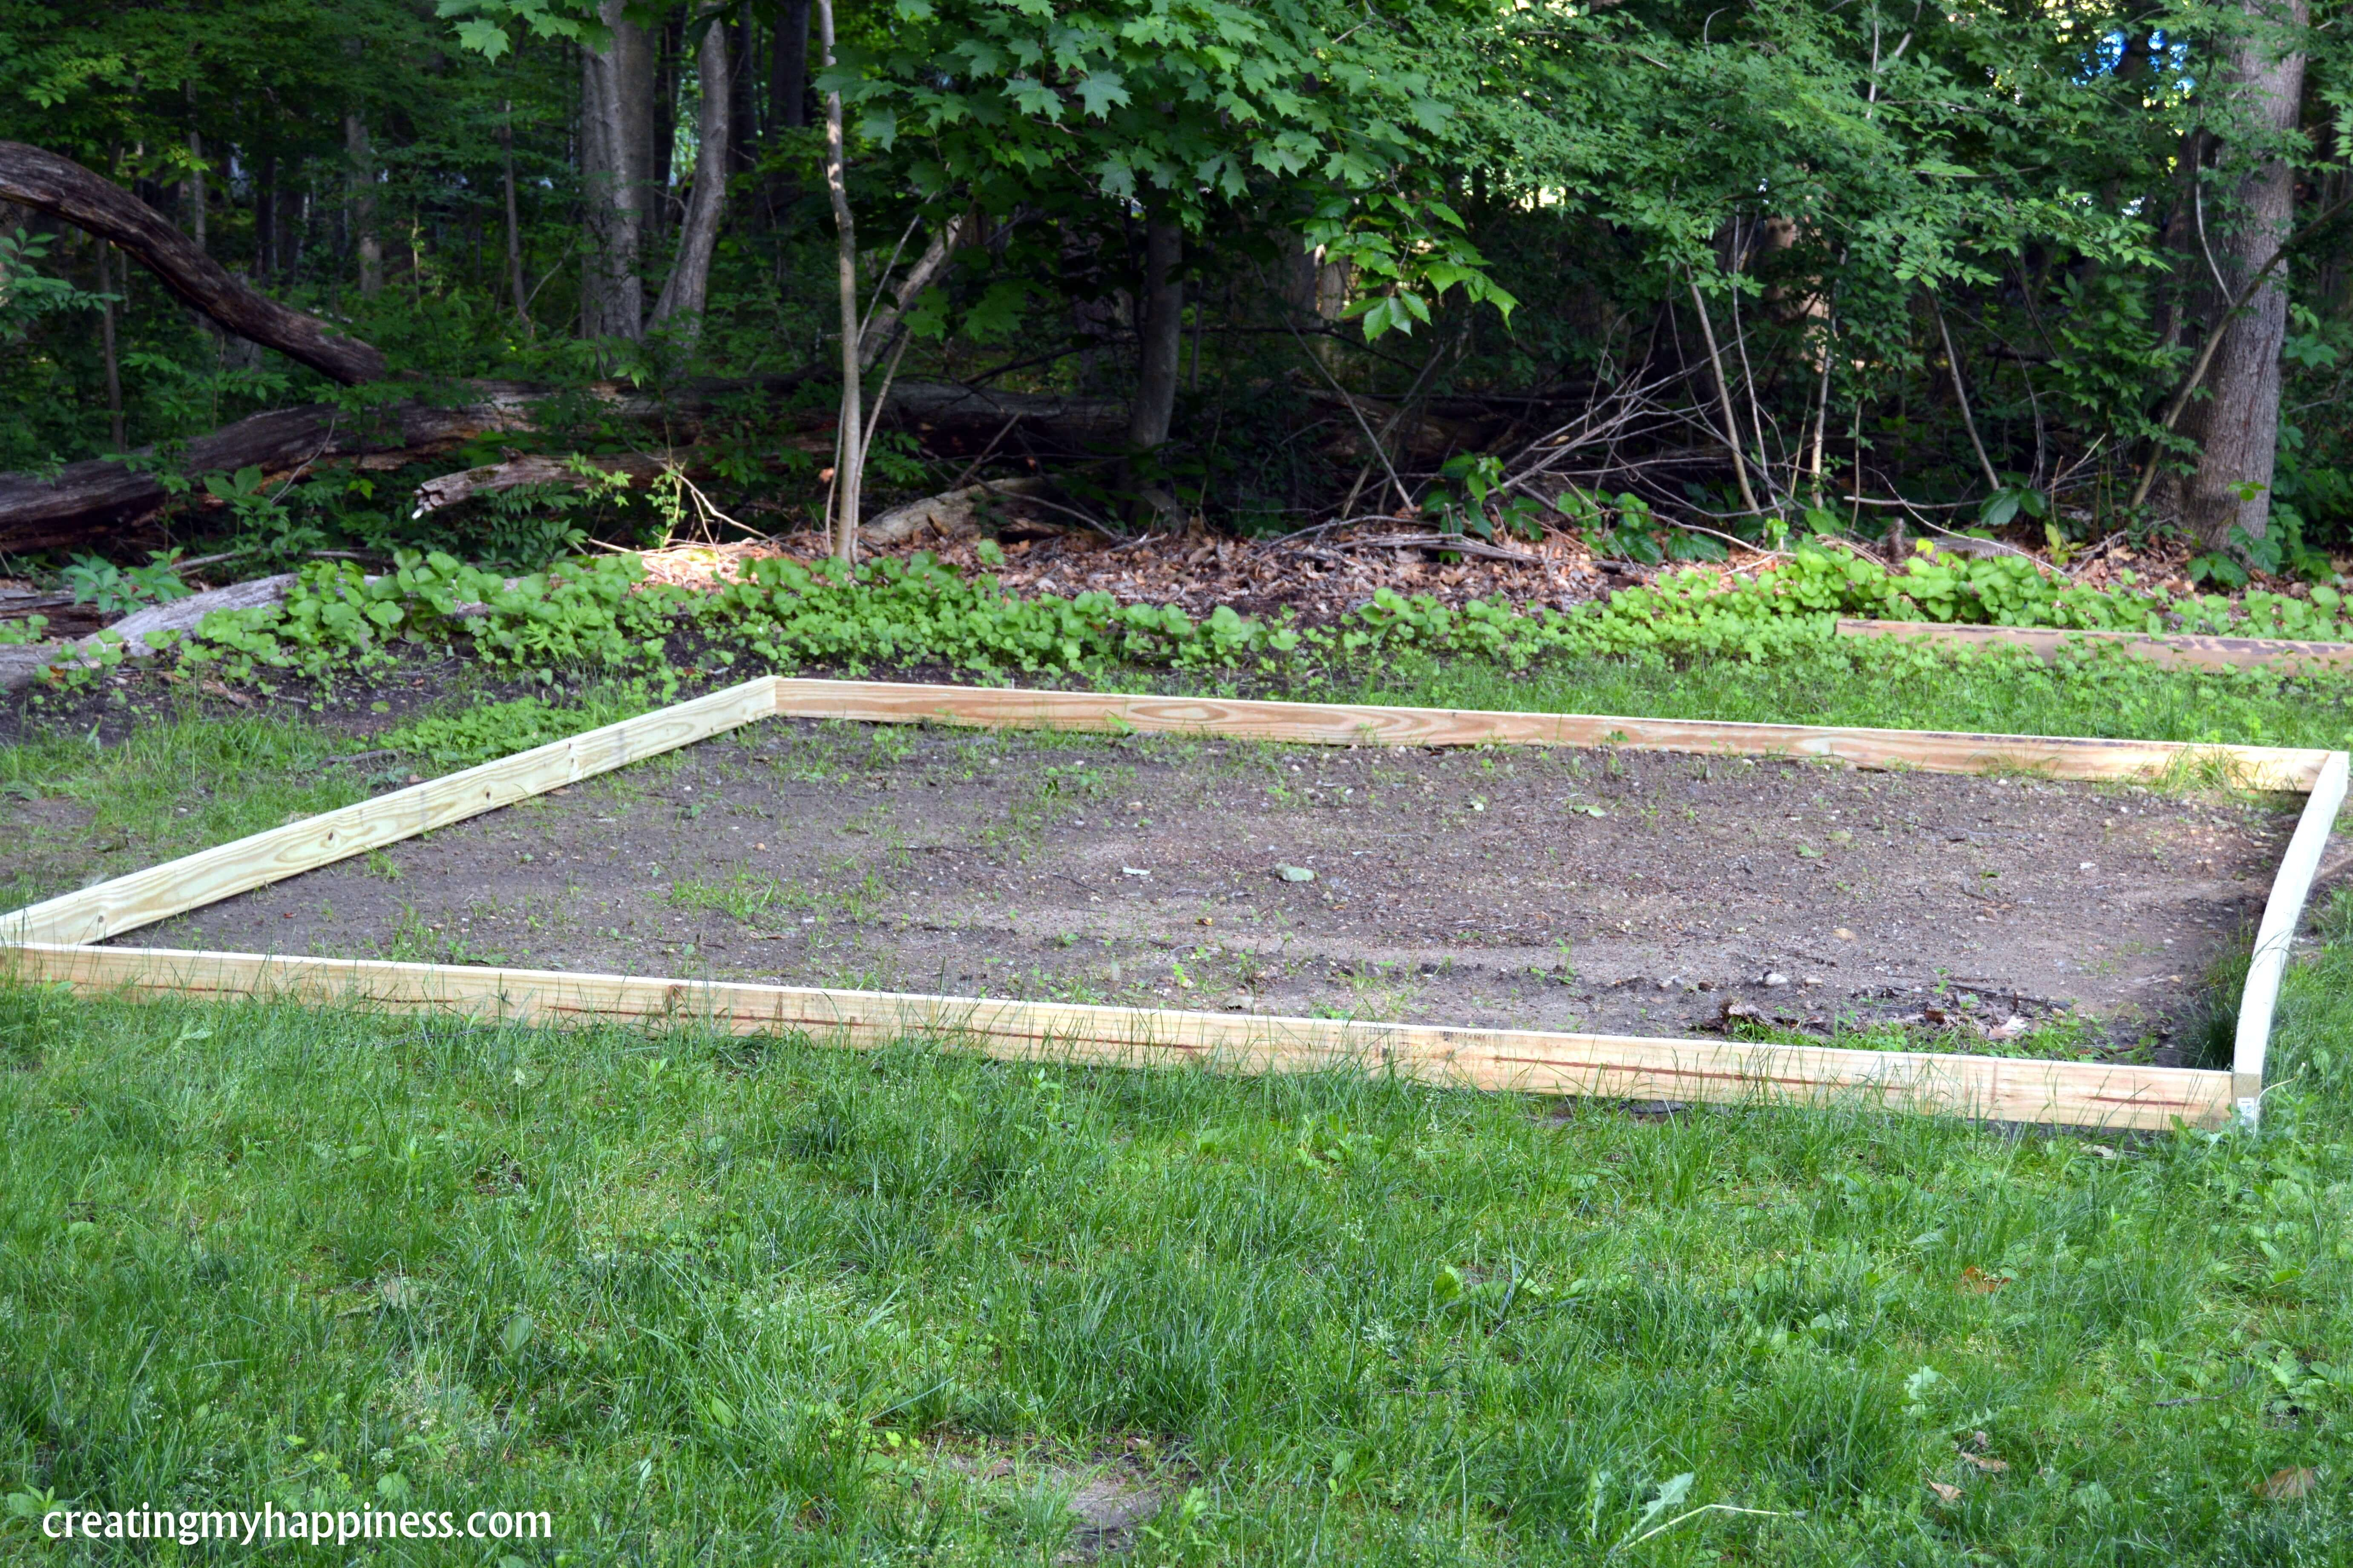 How To Level Ground For A Pool 5 Easy Steps With Pictures Above Ground Pool Landscaping Backyard Pool Landscaping How To Level Ground